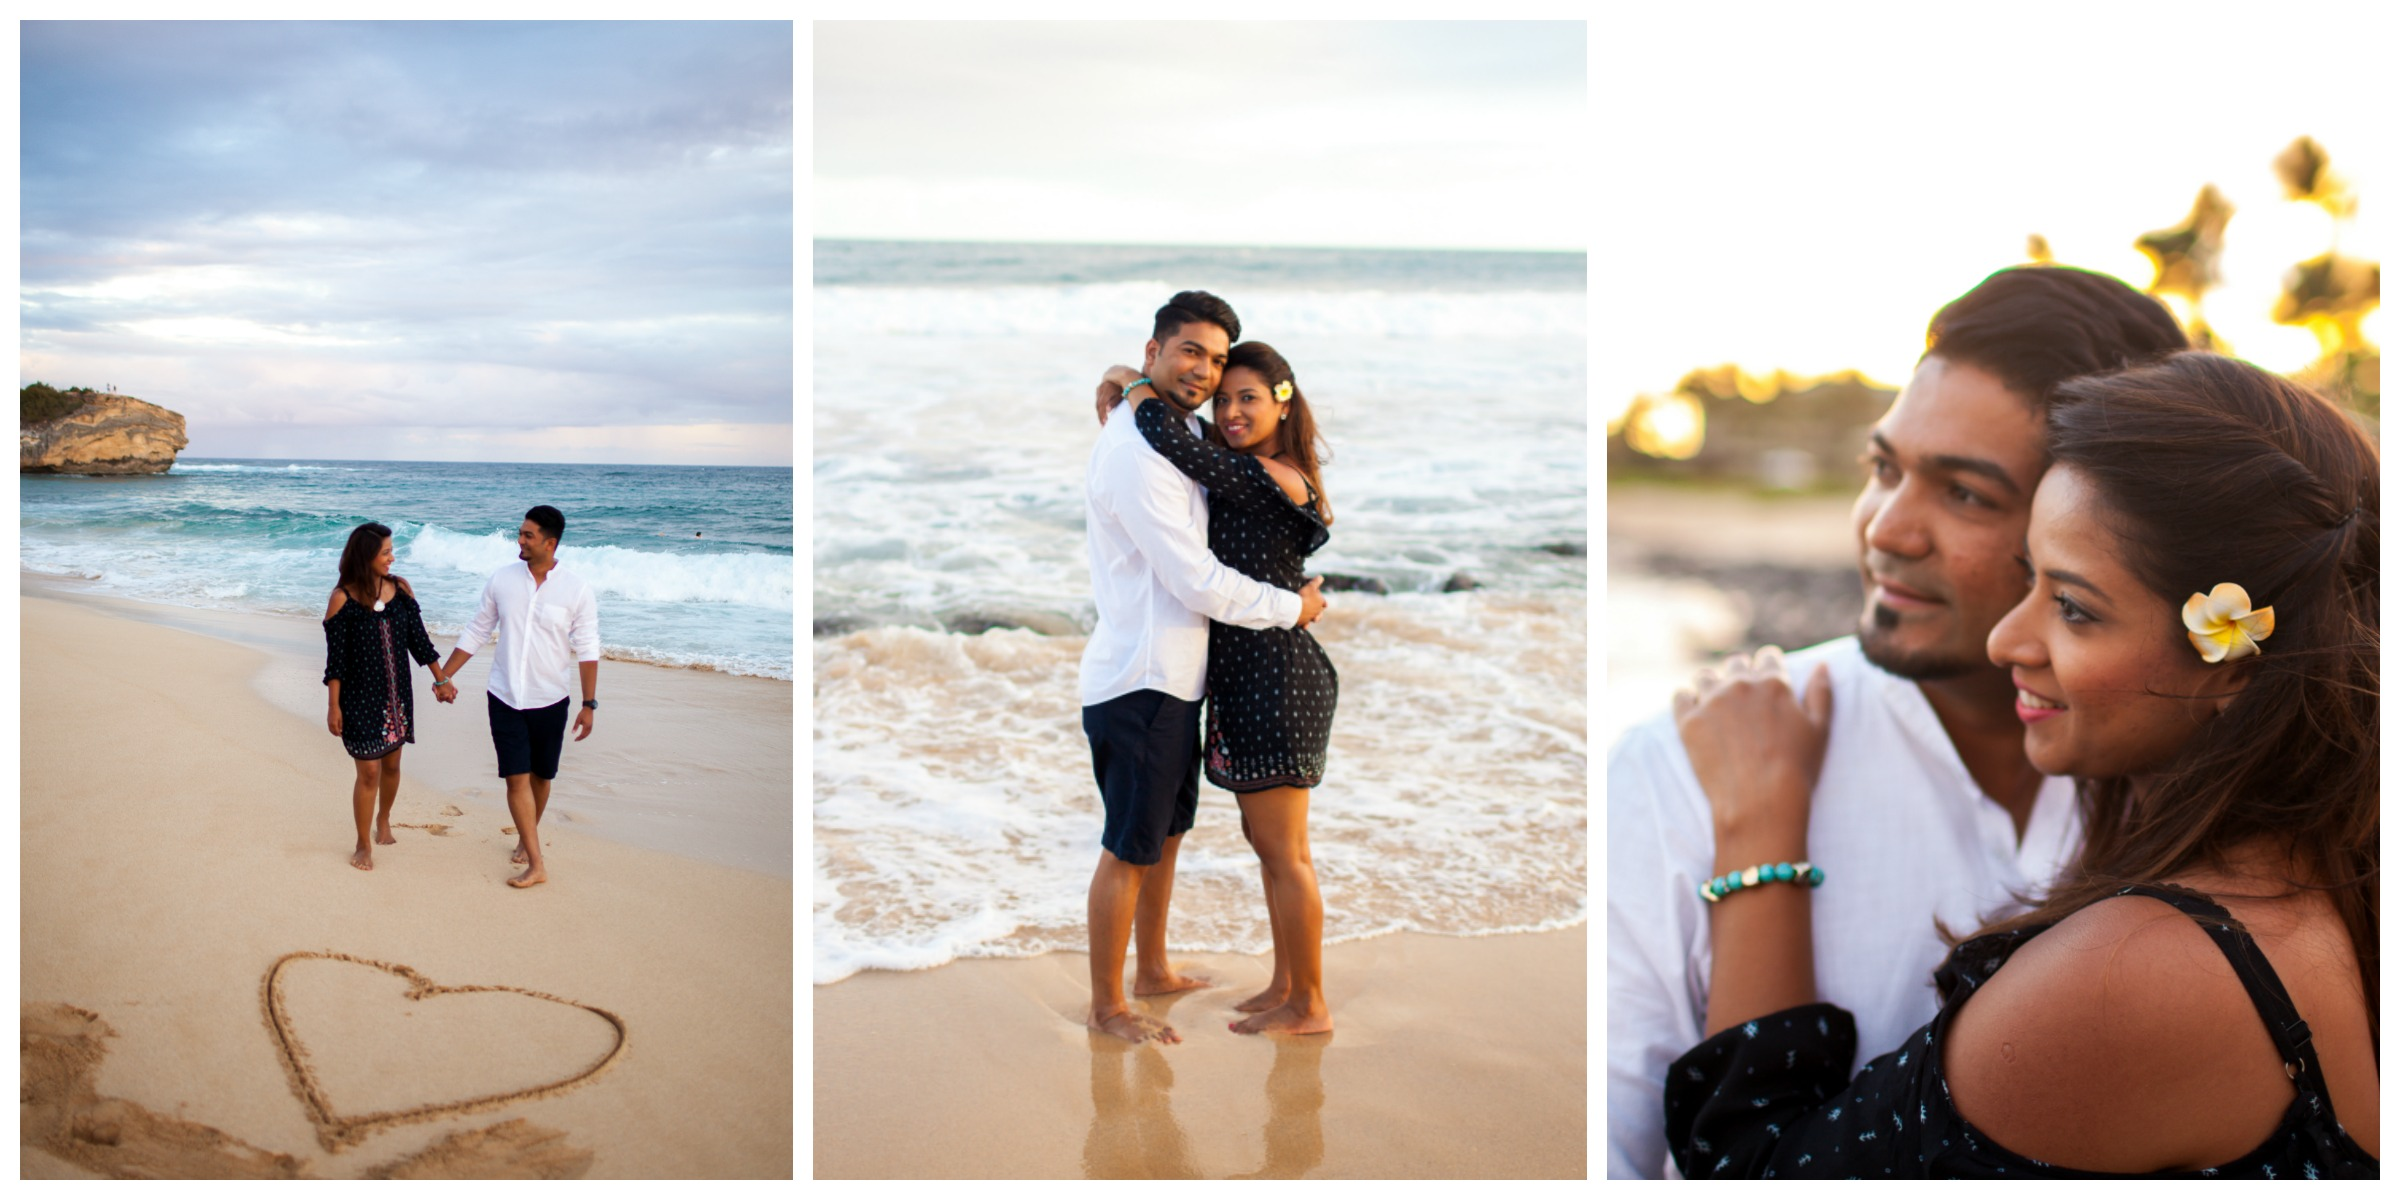 Pacific Dream Photography - Hawaii Photographer - Portrait Photographer - Engagement Photographer - Kauai Photographer-2